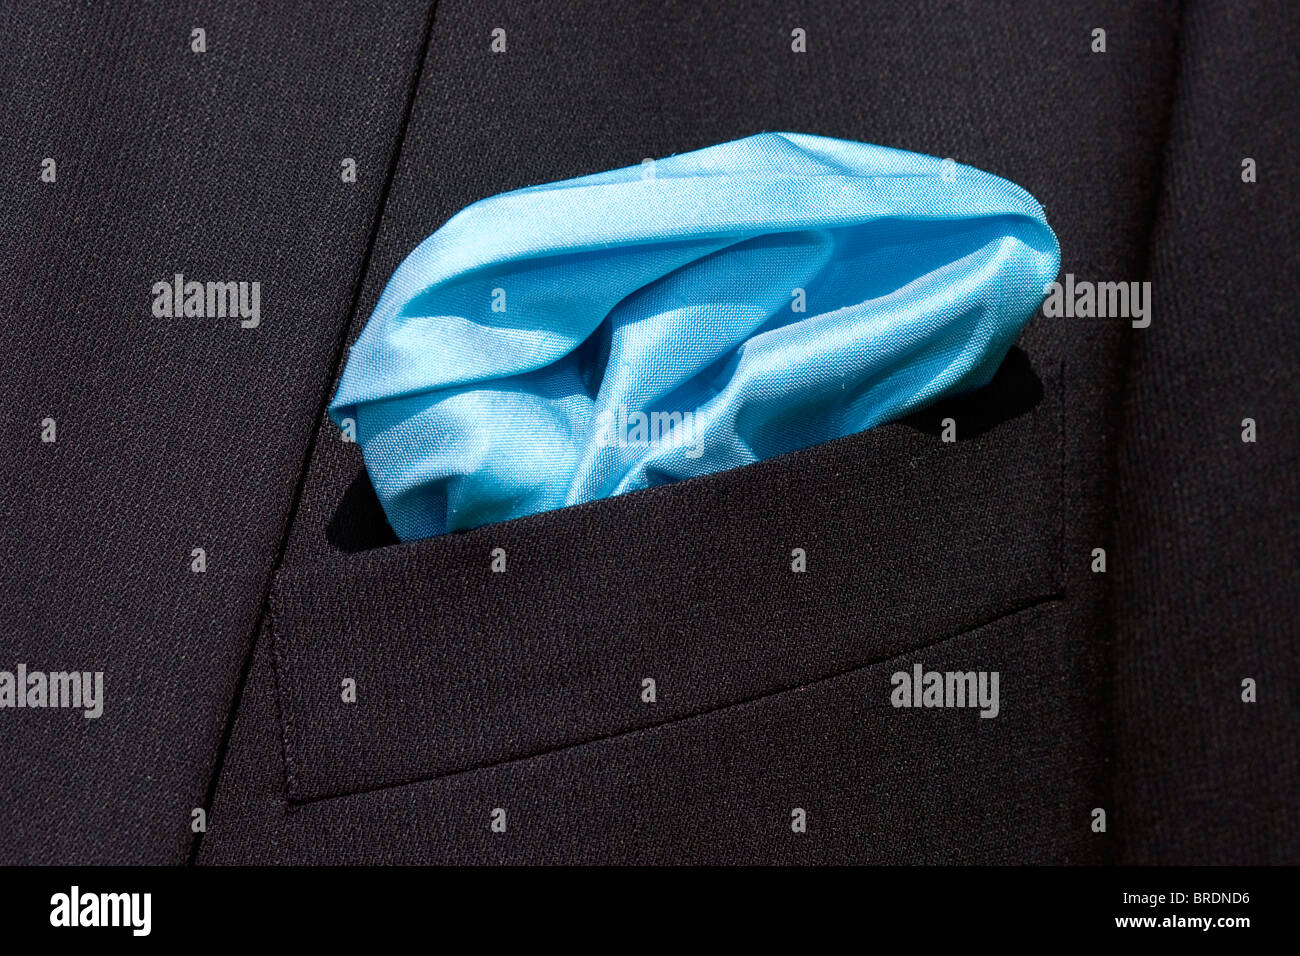 Blue handkerchief  in the pocket of the jacket worn on the day of the wedding. - Stock Image